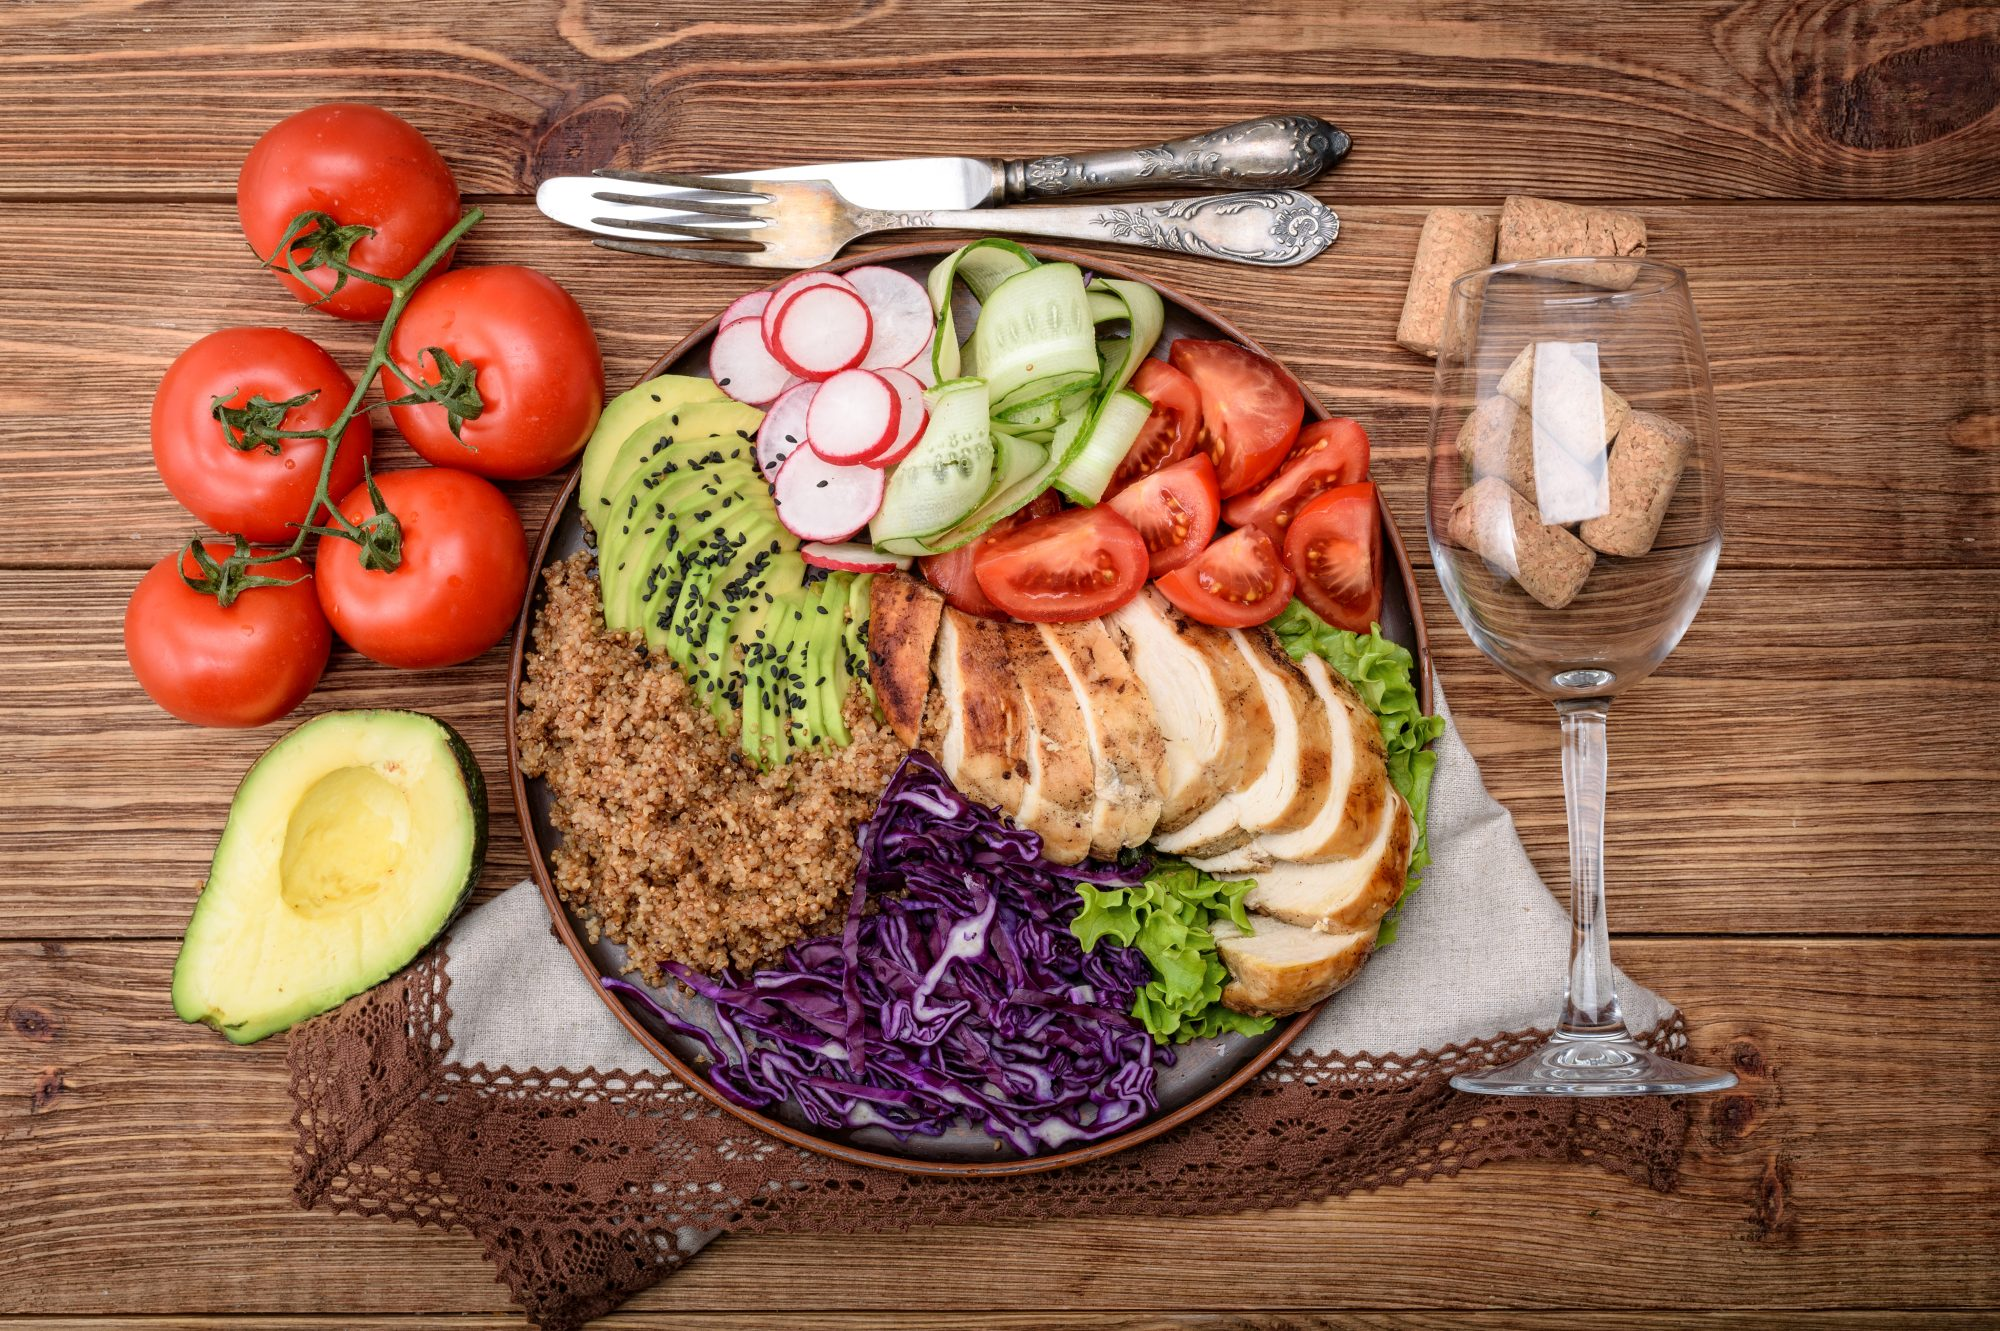 Food prep tips to help you count your macros